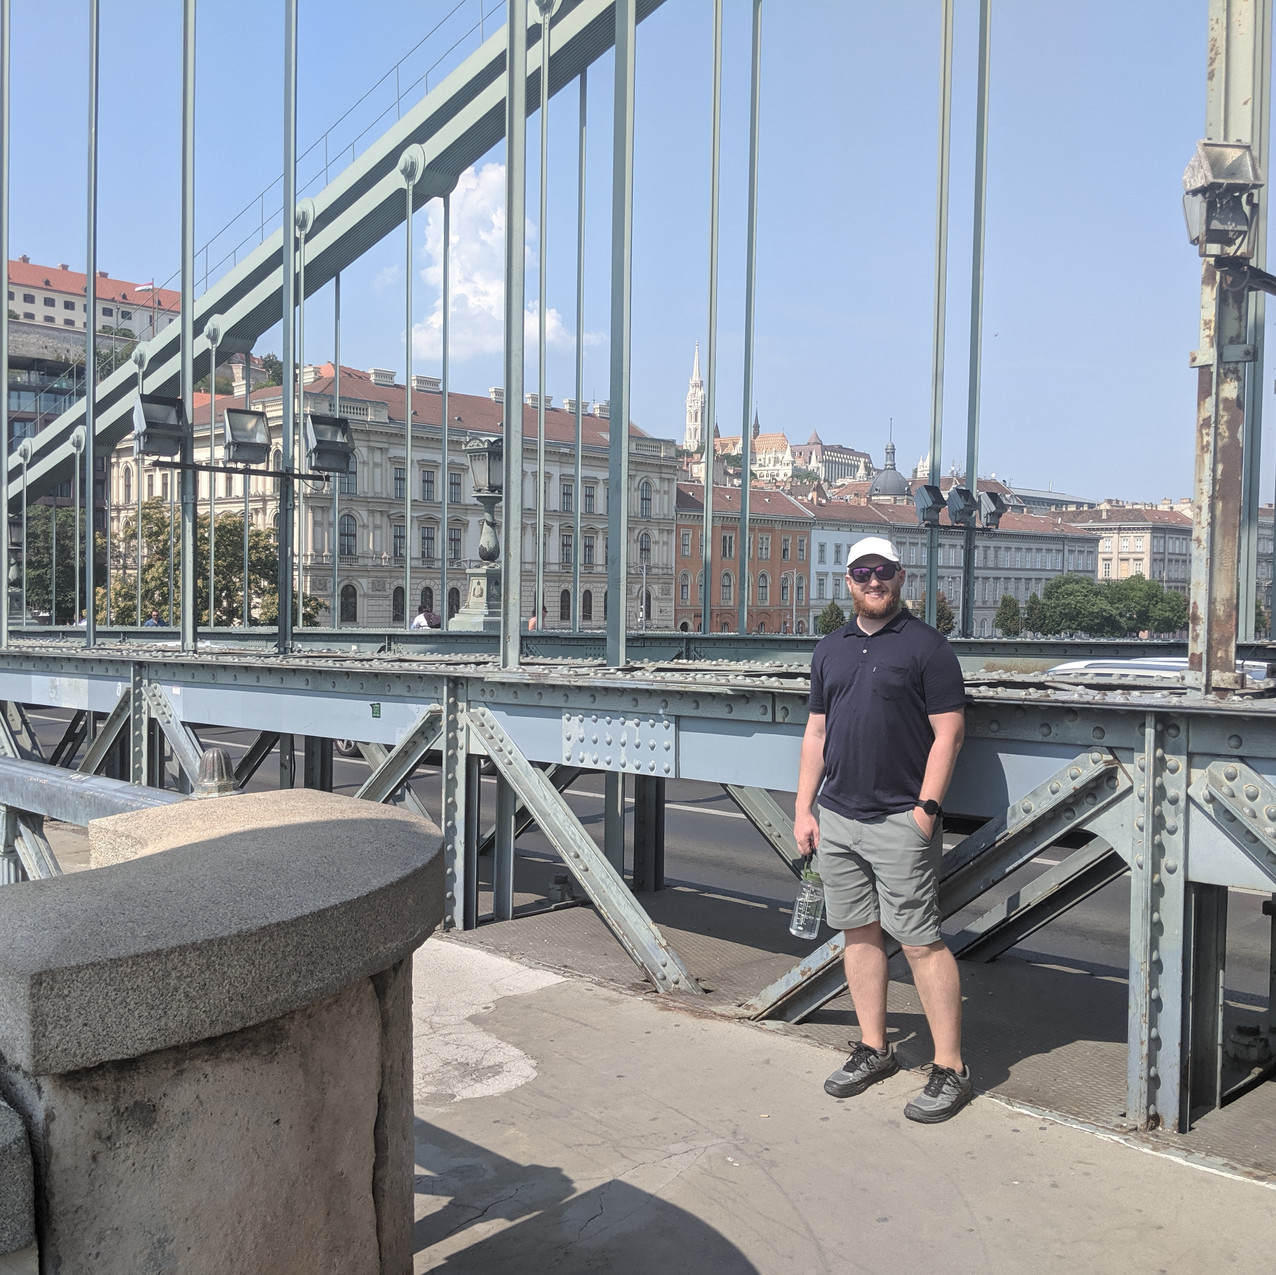 Eddie on a bridge crossing the Danube during the day.